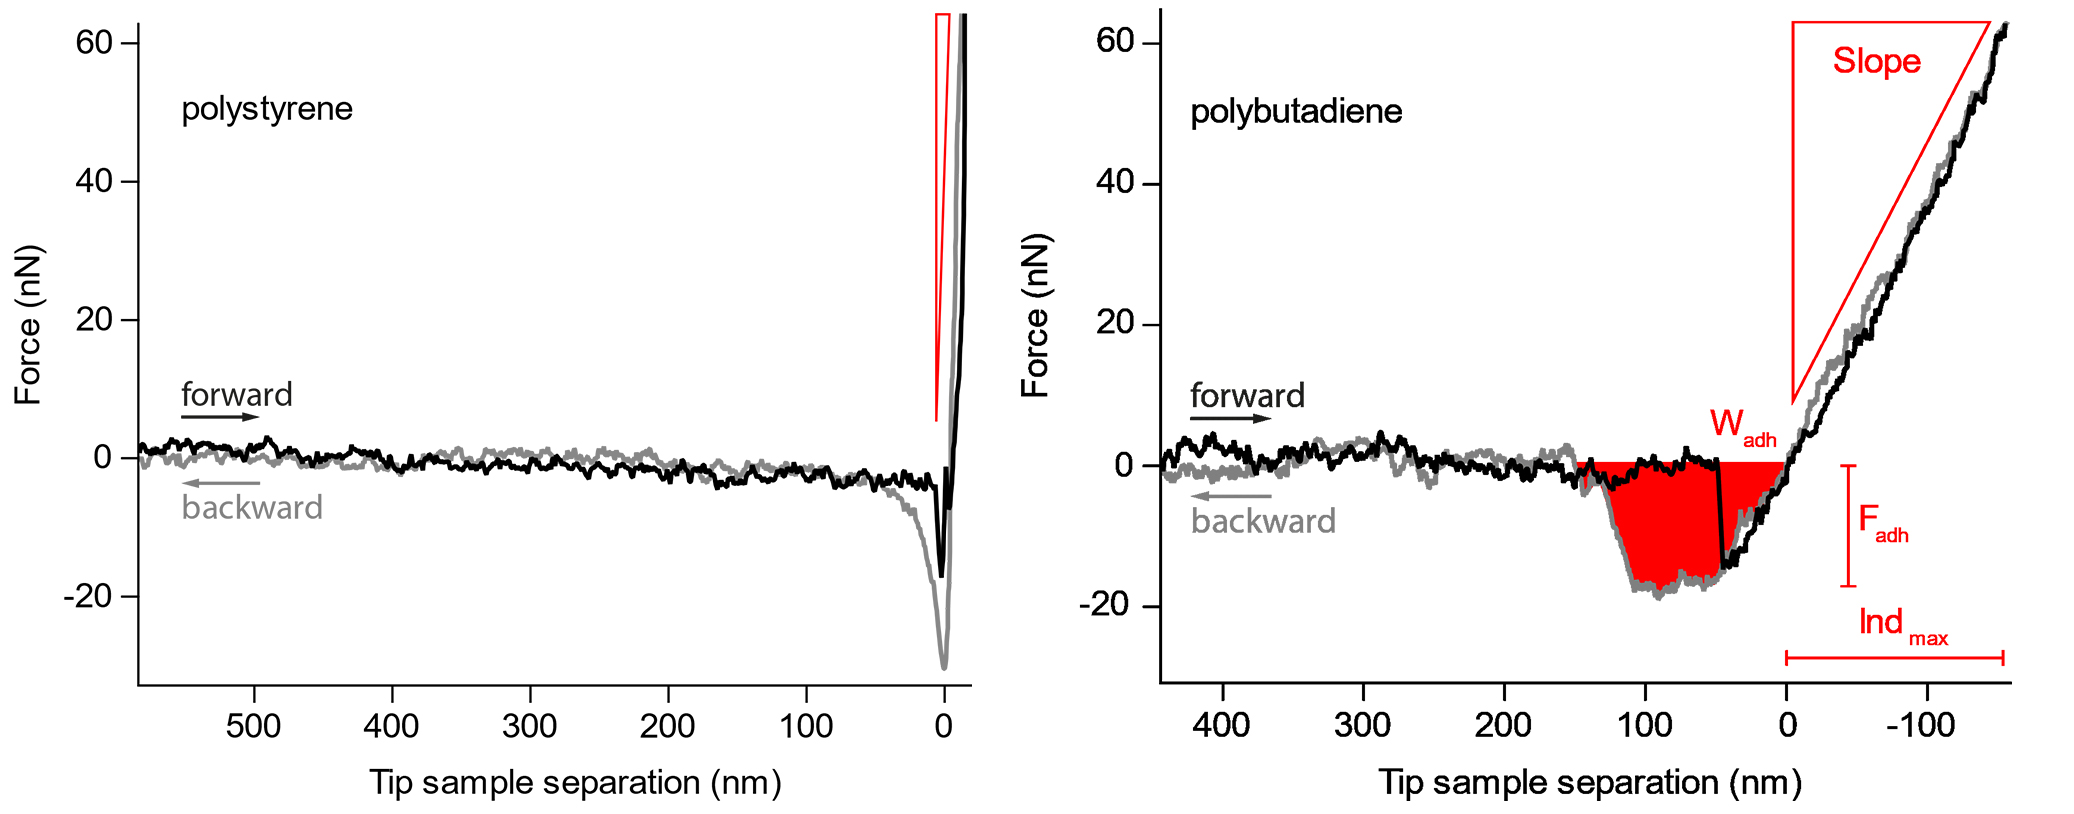 Figure 2. Force curves on the harder polystyrene and the softer polybutadiene. The slope, maximum adhesion force and work needed to retract the cantilever from the sample are readily observed.